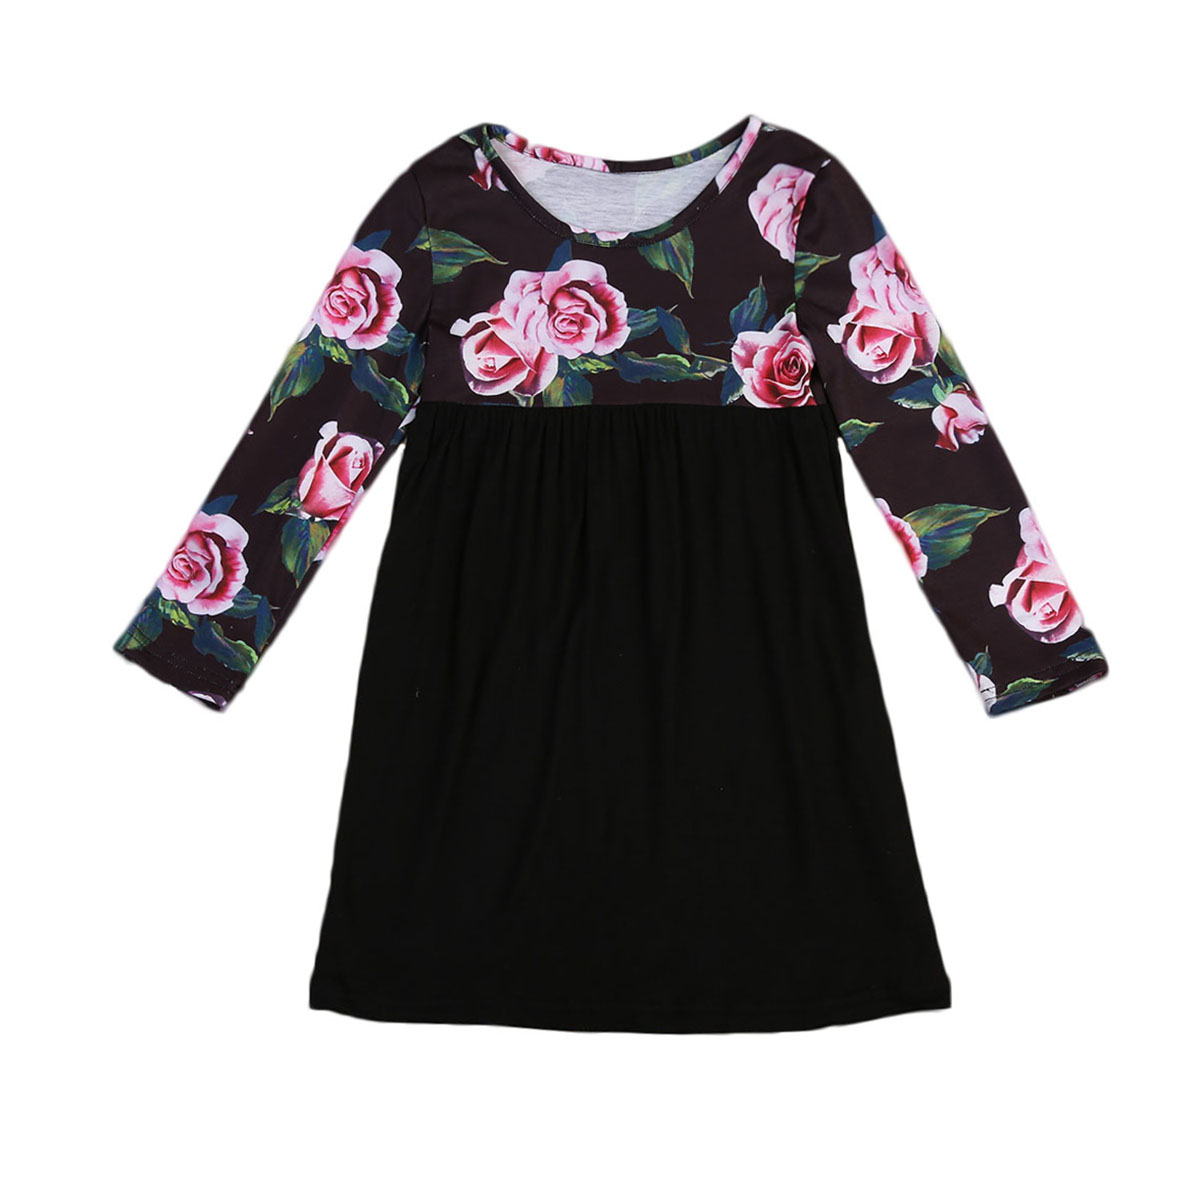 2-7 Years Toddler Kids Baby Girls Clothes Dresses Long Sleeve Summer Outfits Flower Cute New Summer Dress Girl стоимость